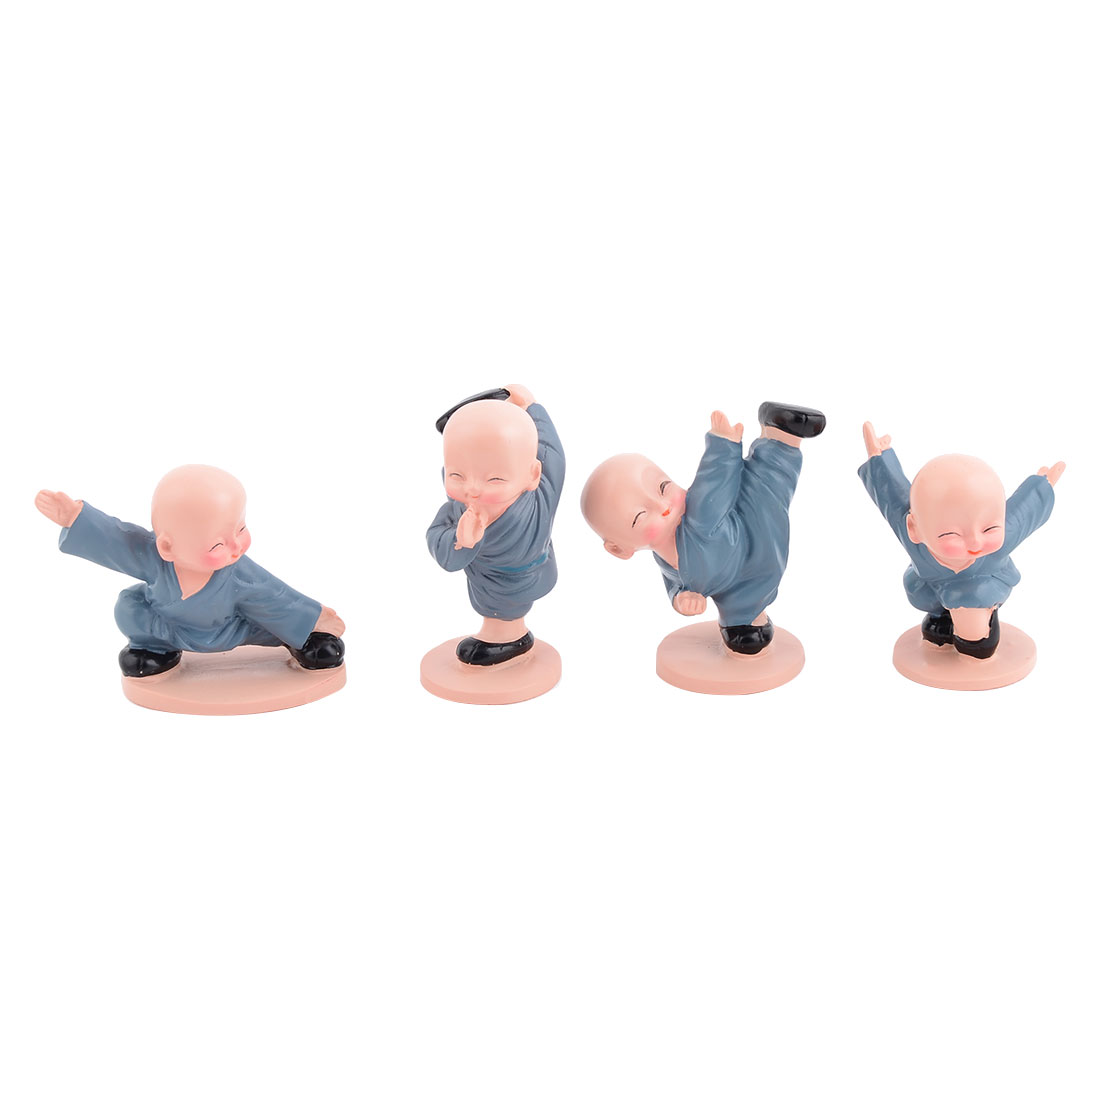 Party Gift Resin Chinese Kung Fu Monk Design Desk Table Decor Landscape 4 in 1